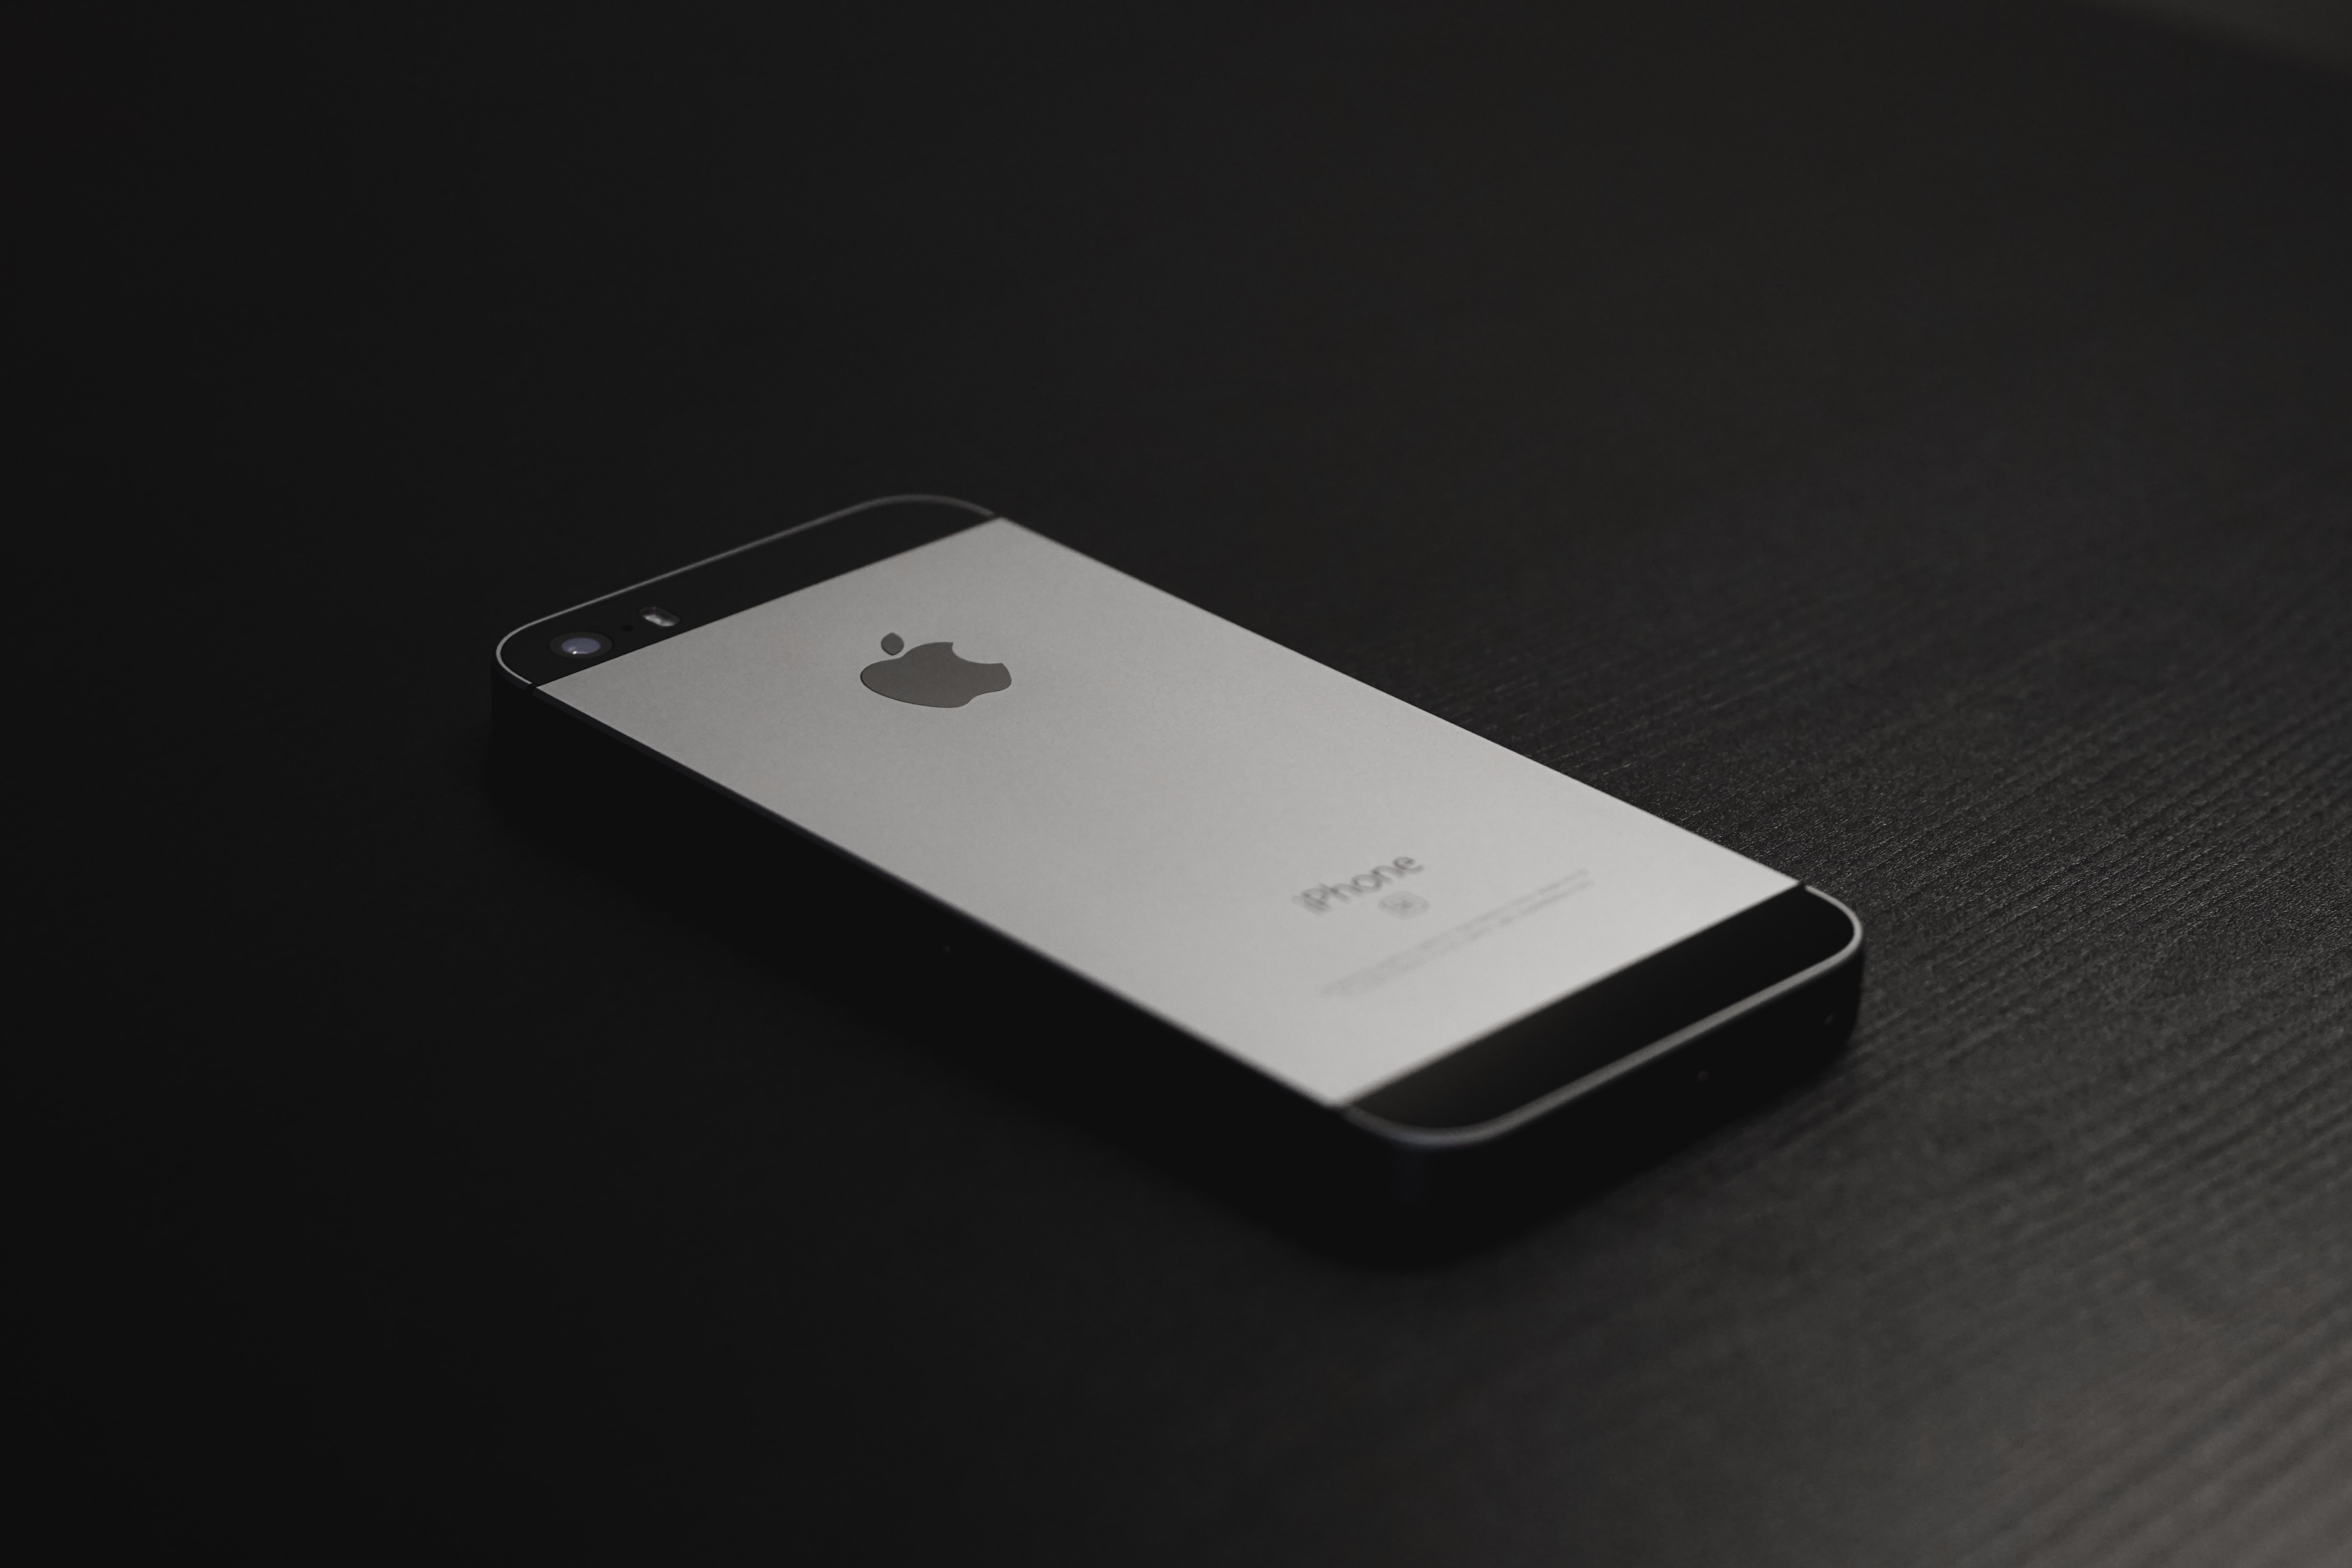 space gray iPhone 5s